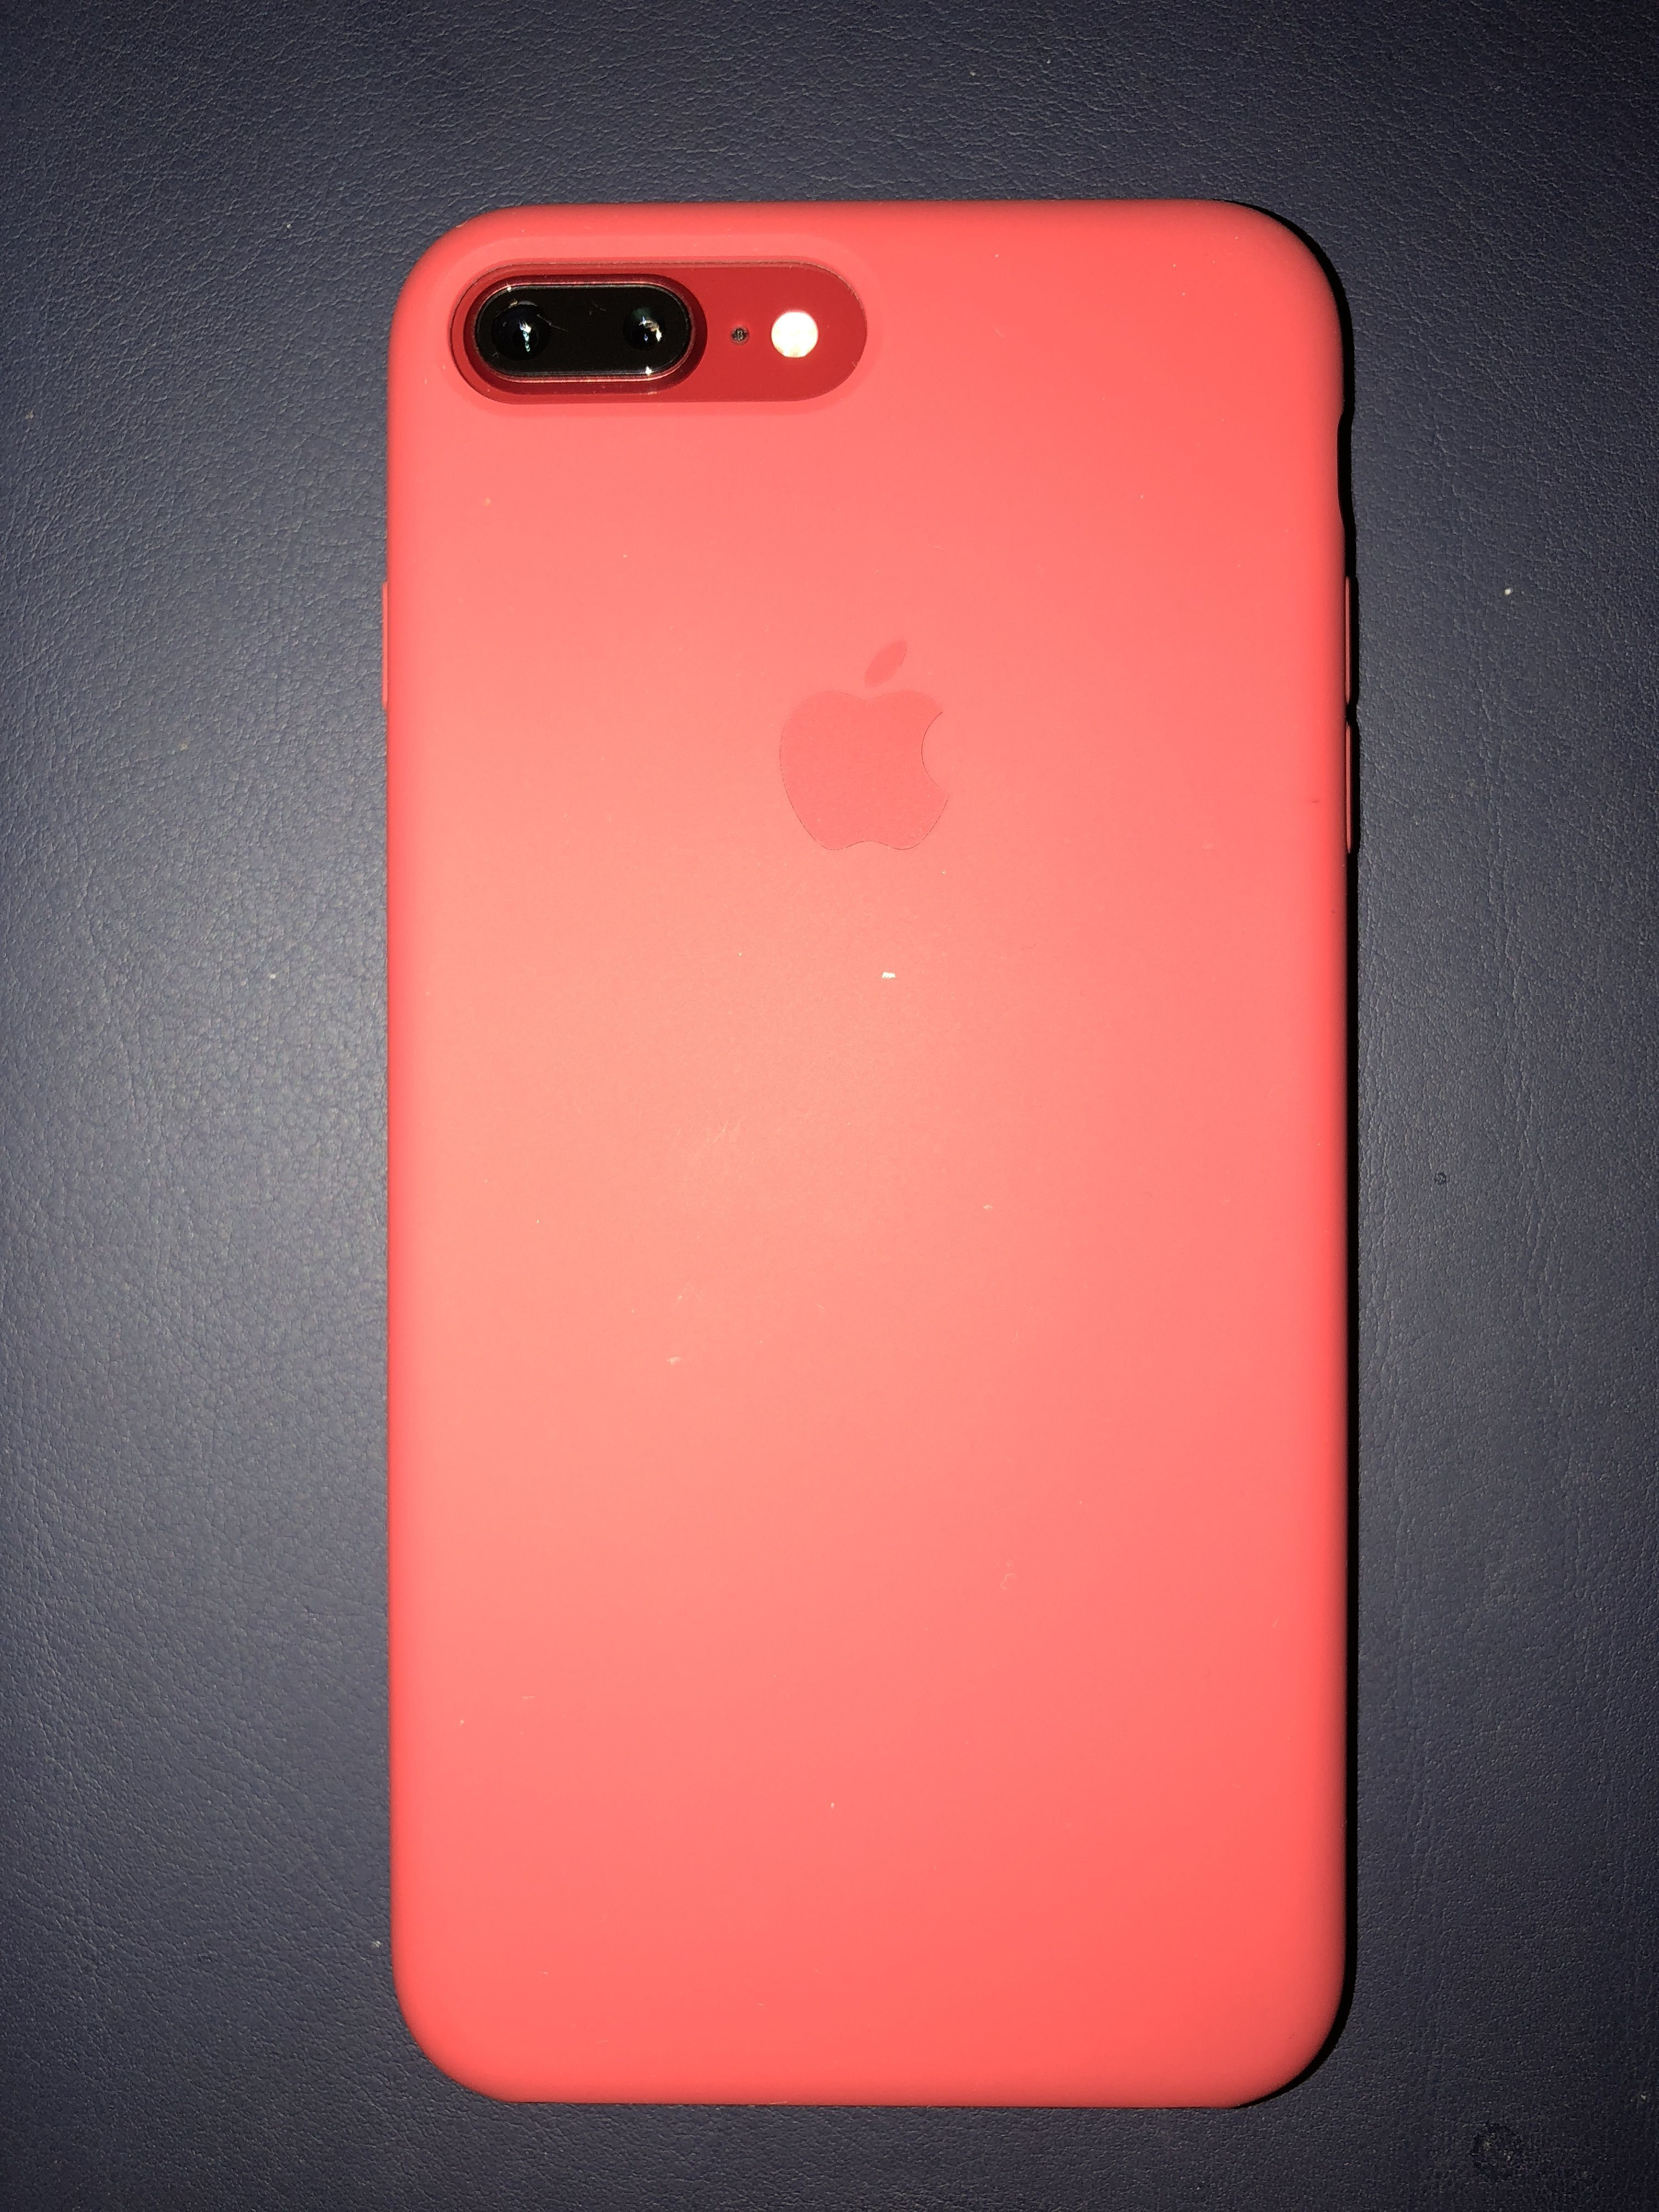 Productrediphone8plus Product Red Iphone 8 Plus With Product Red Silicone Case Iphone7plus Iphone Phone Cases Red Iphone Case Iphone